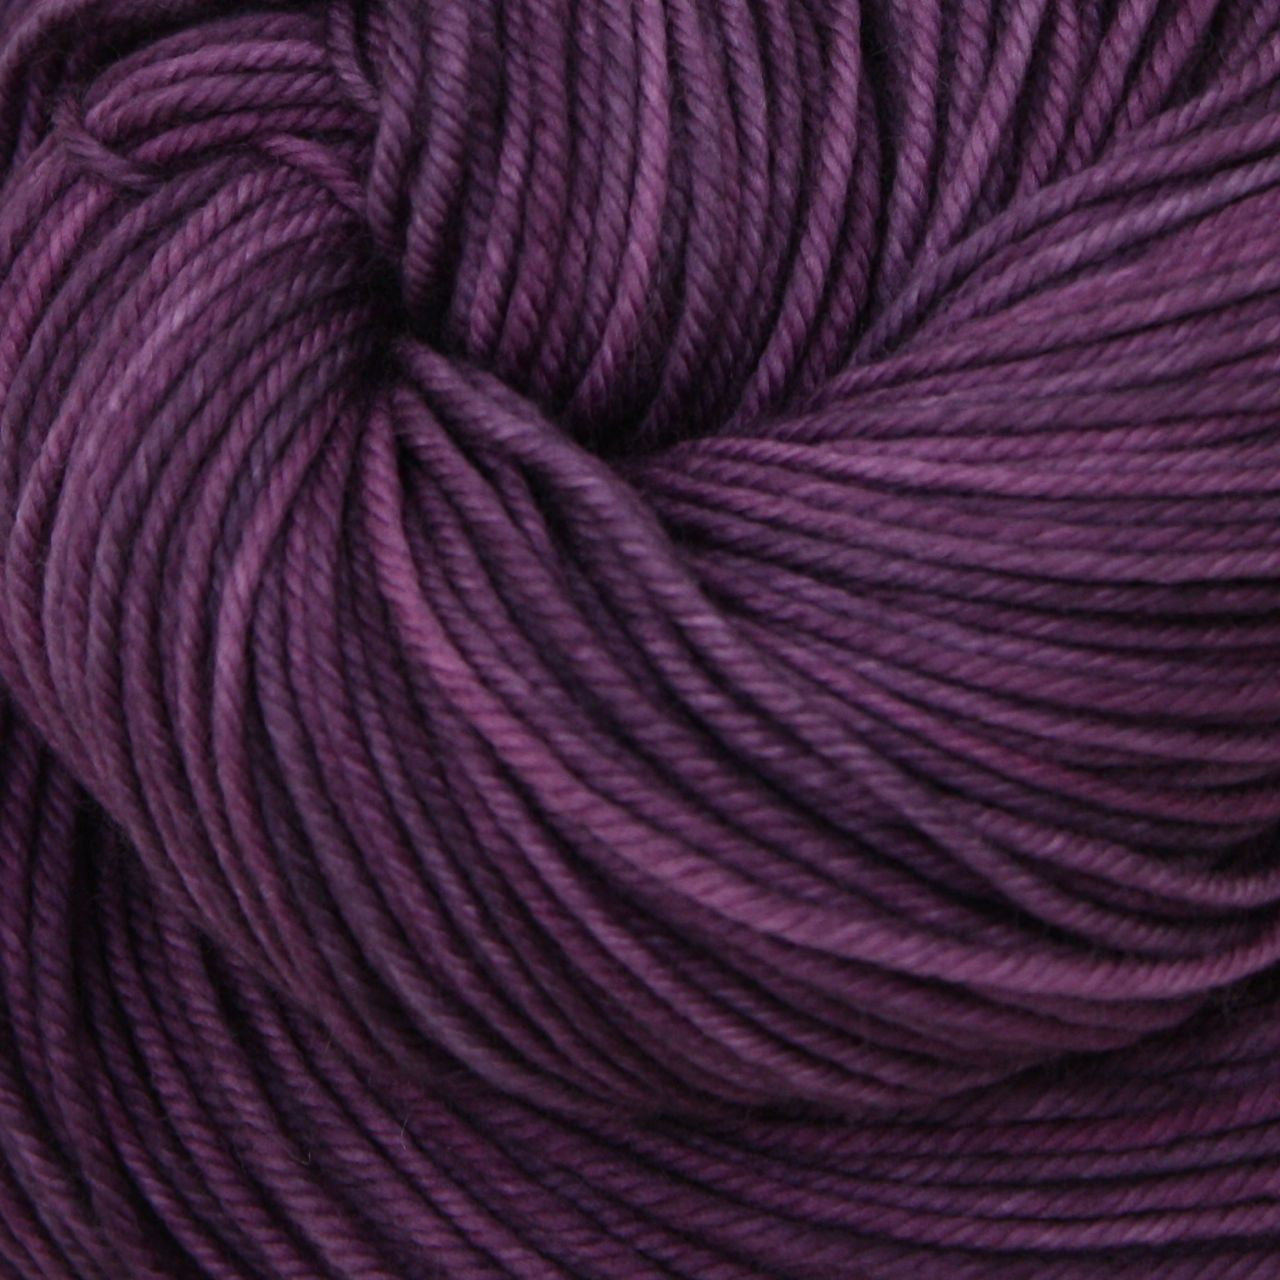 Calypso Yarn | Colorway: Eggplant